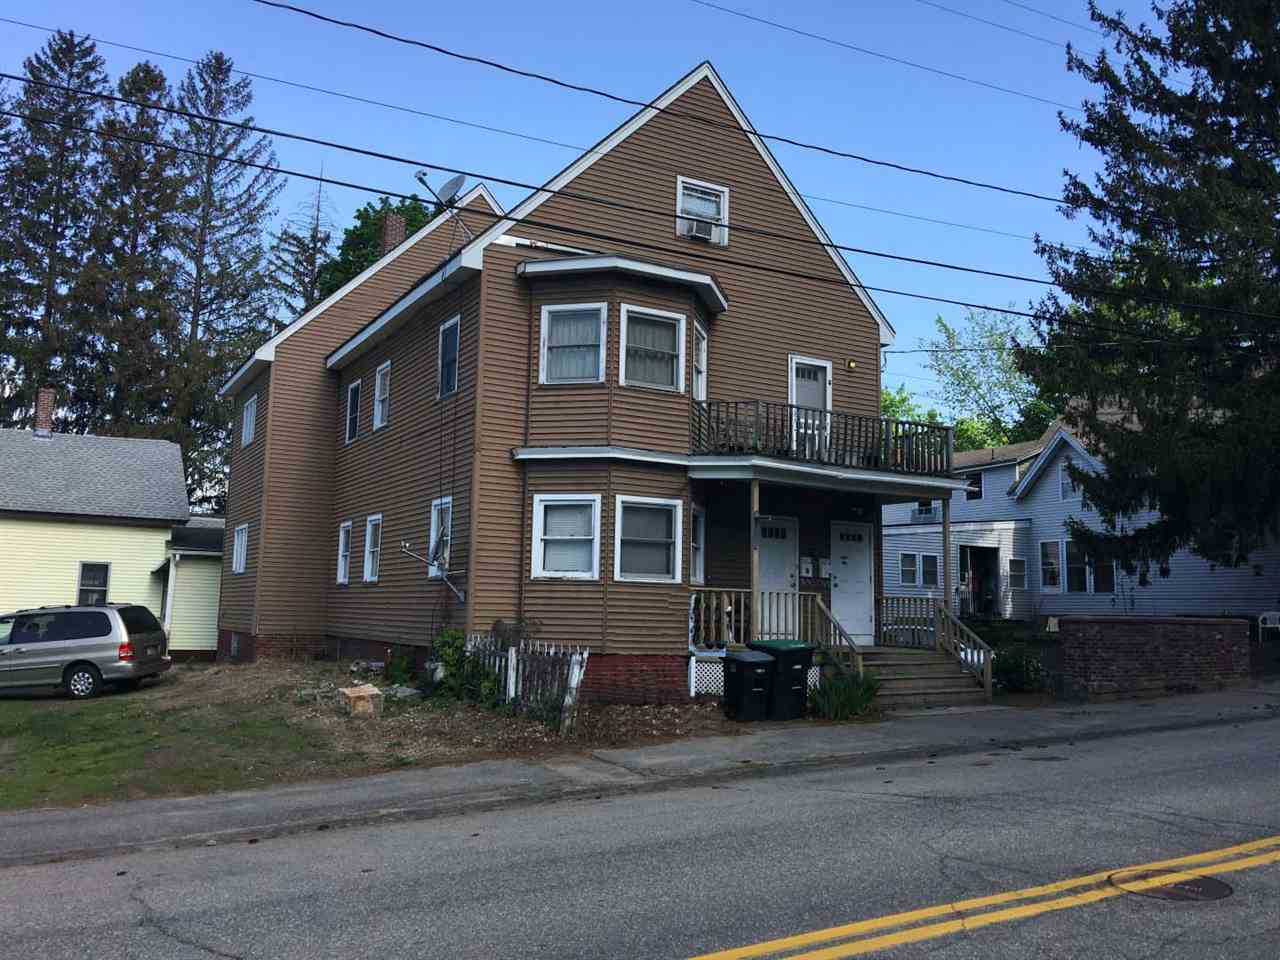 Commercial Property For Sale In Franklin Nh